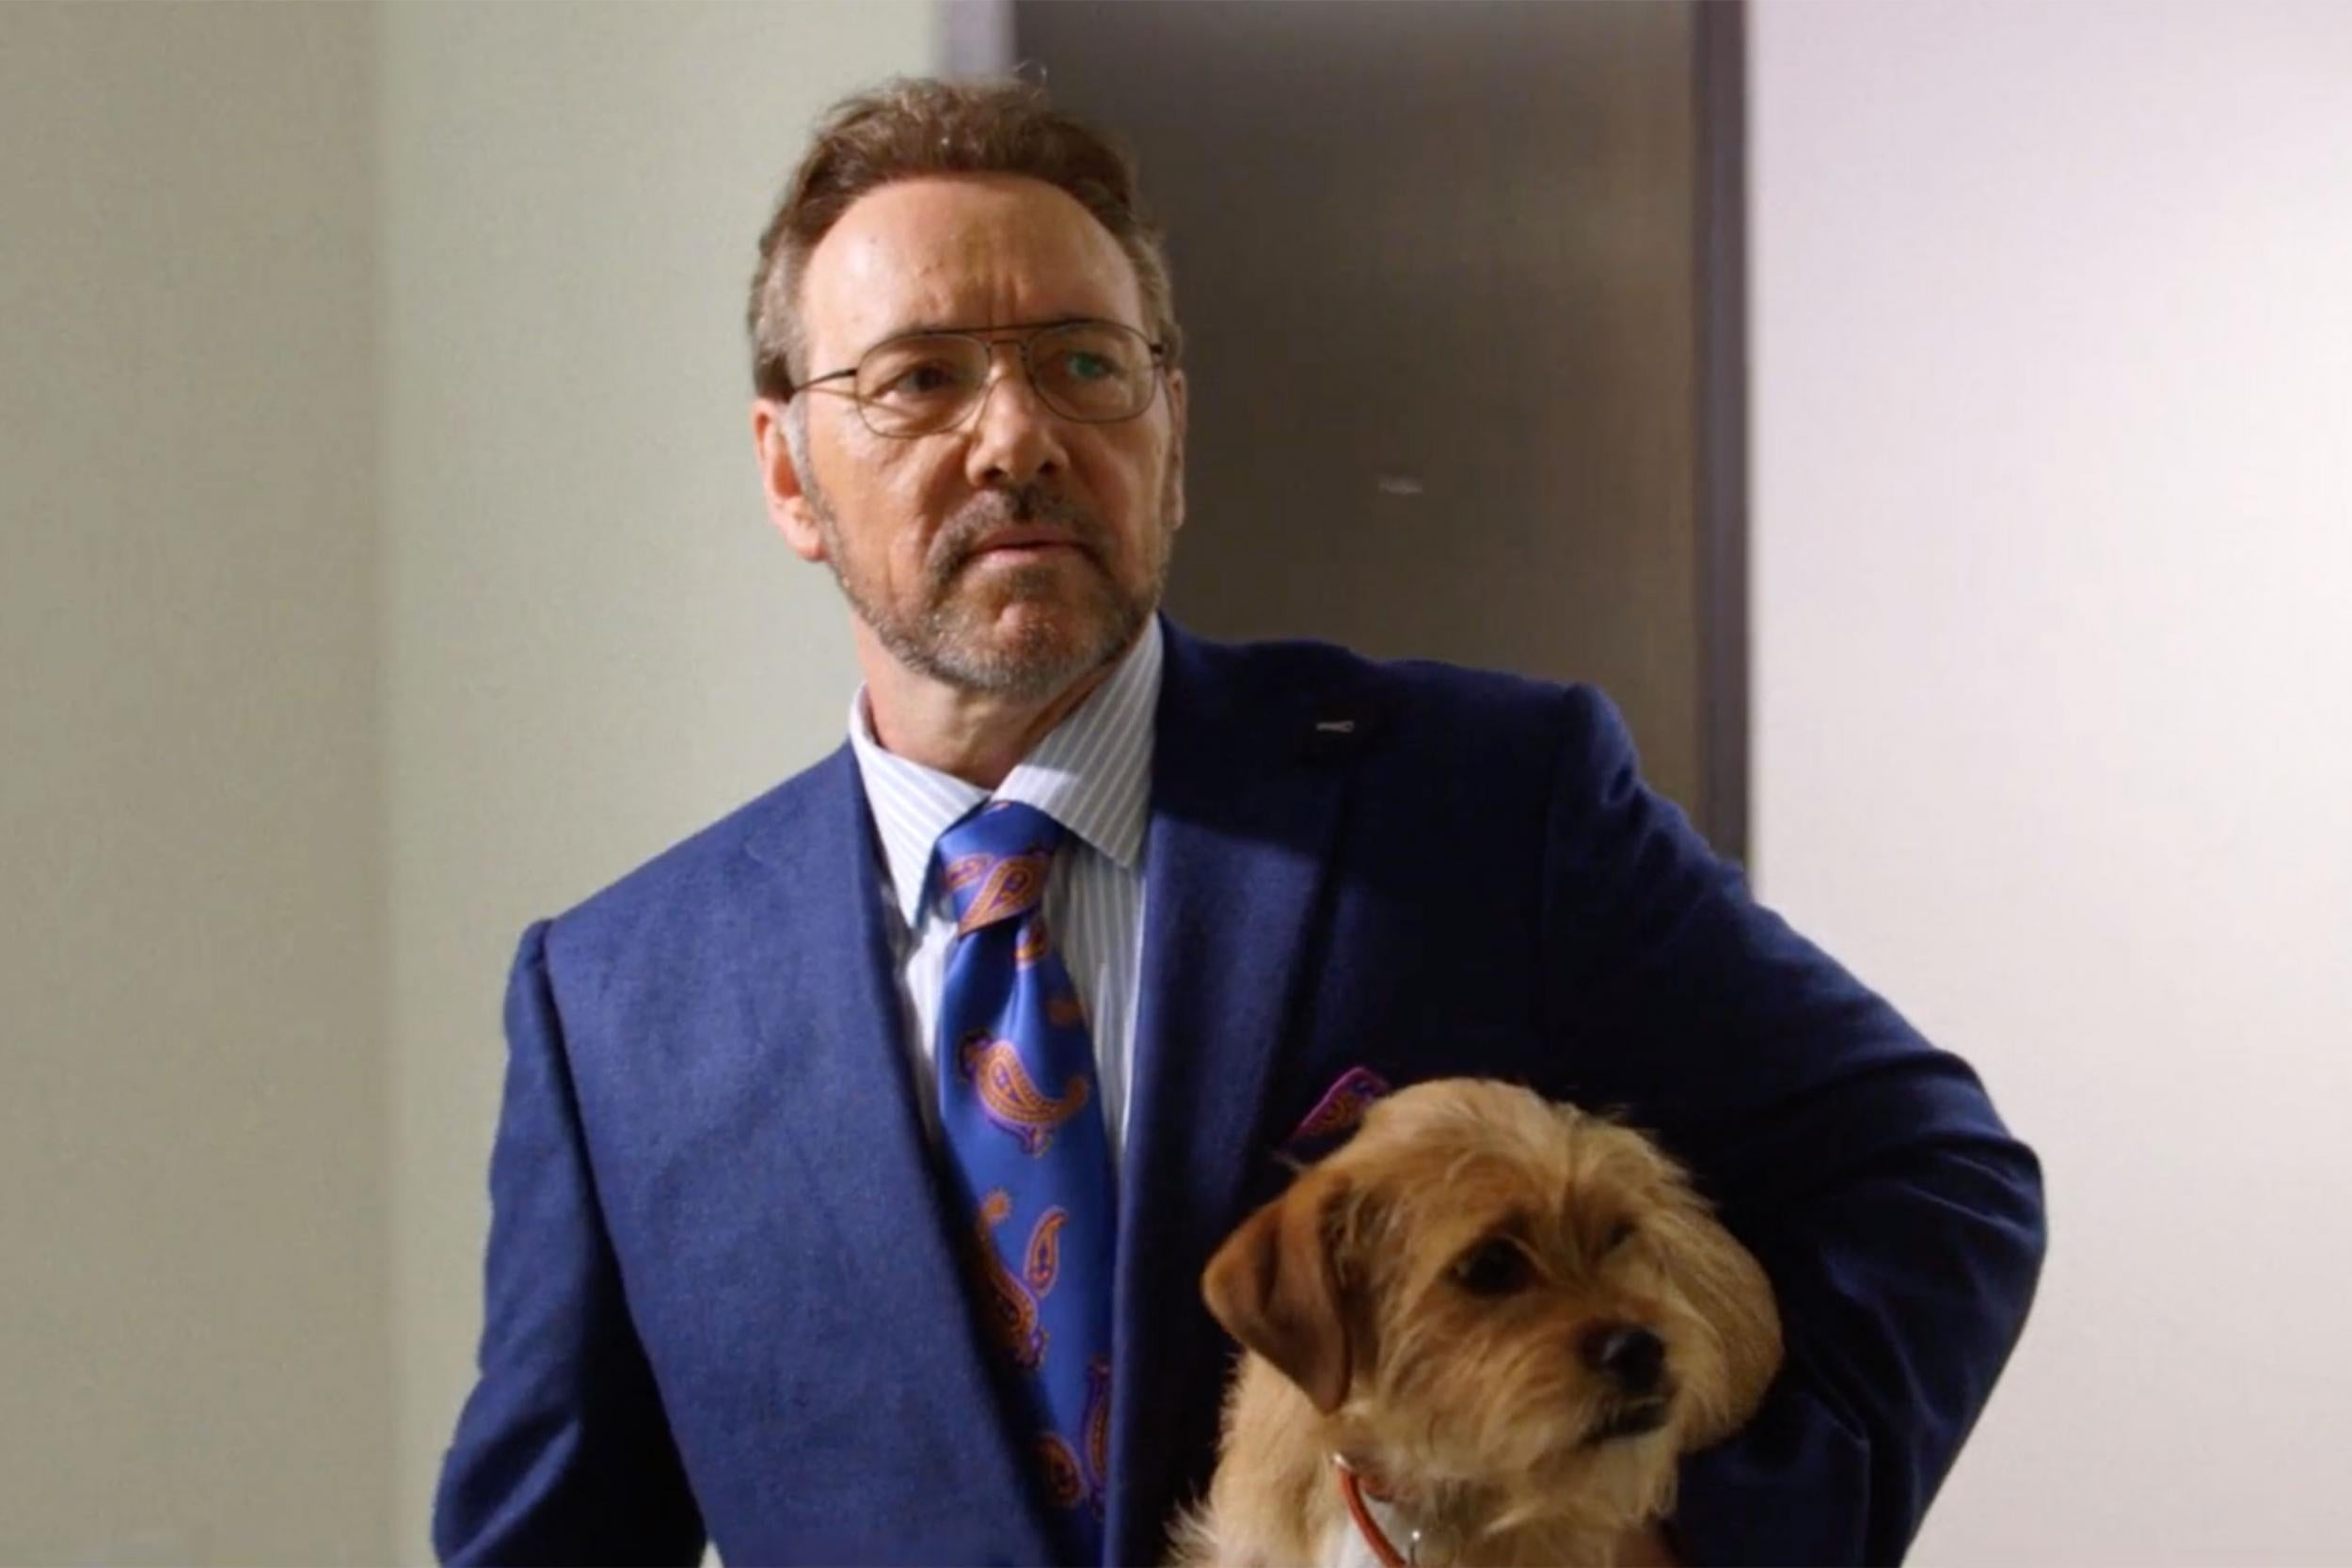 Kevin Spacey's first movie since sexual assault allegations opens to correct $126 in US cinemas thumbnail